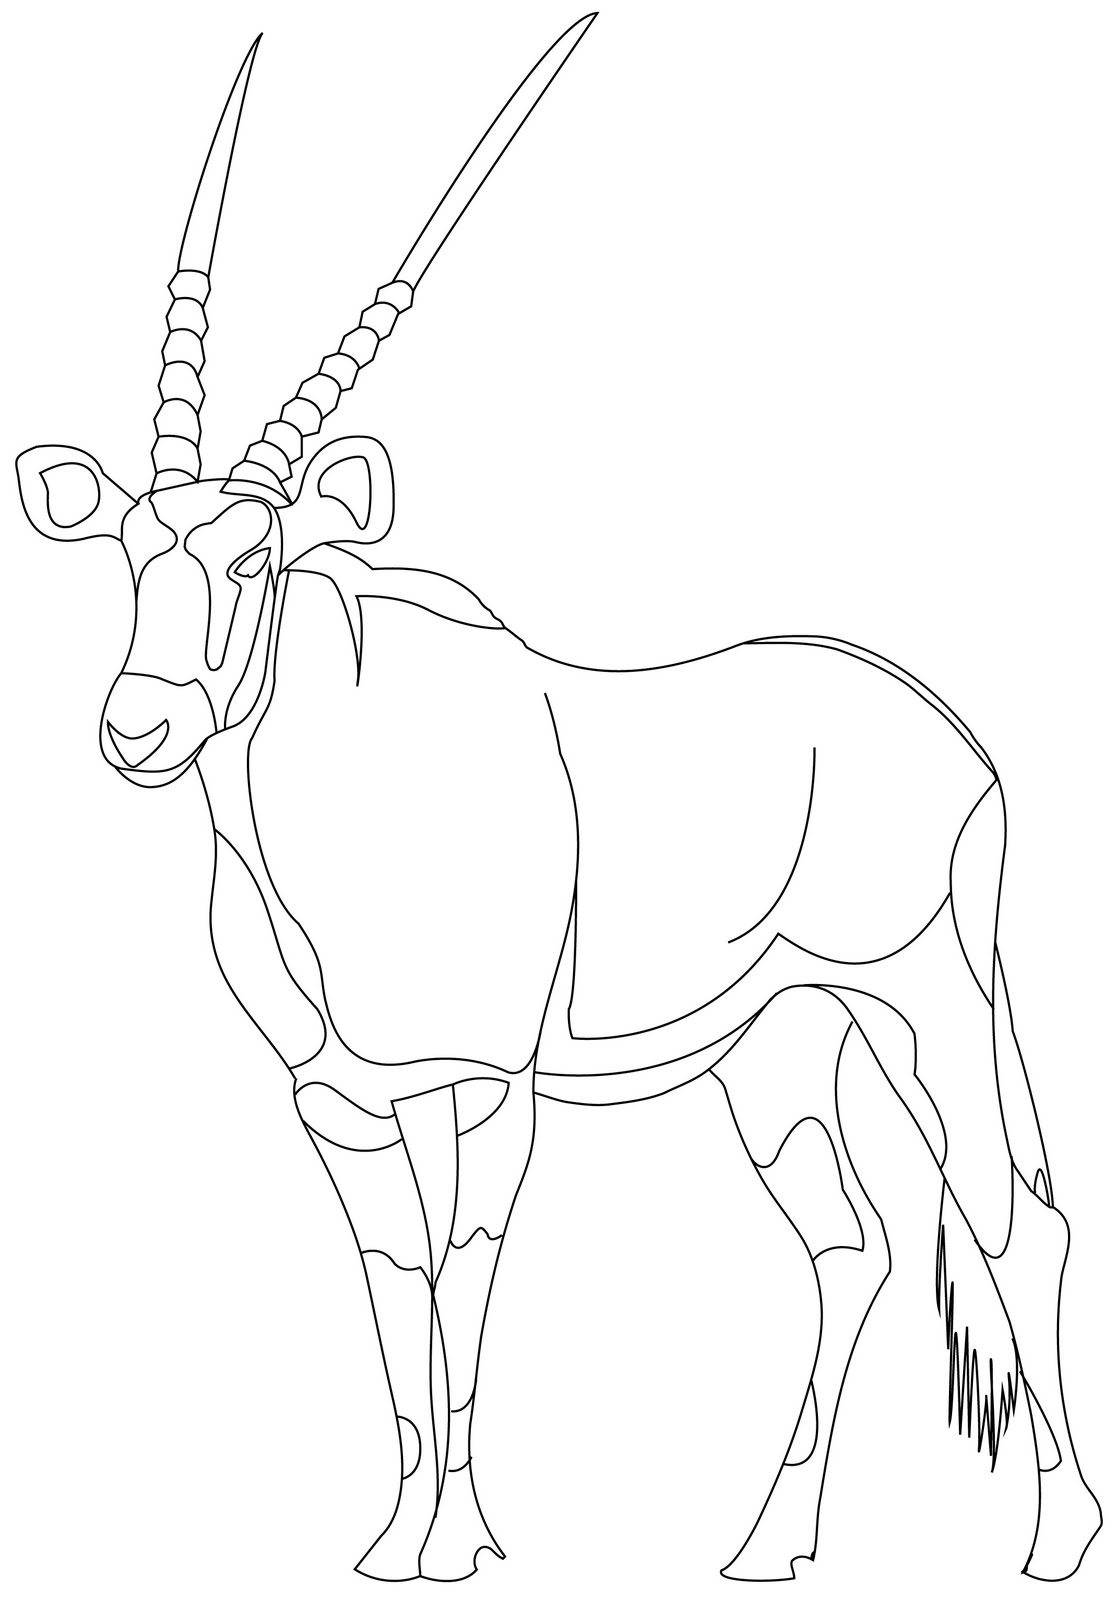 Antelope Face Drawing Gemsbok Face Outline Drawing